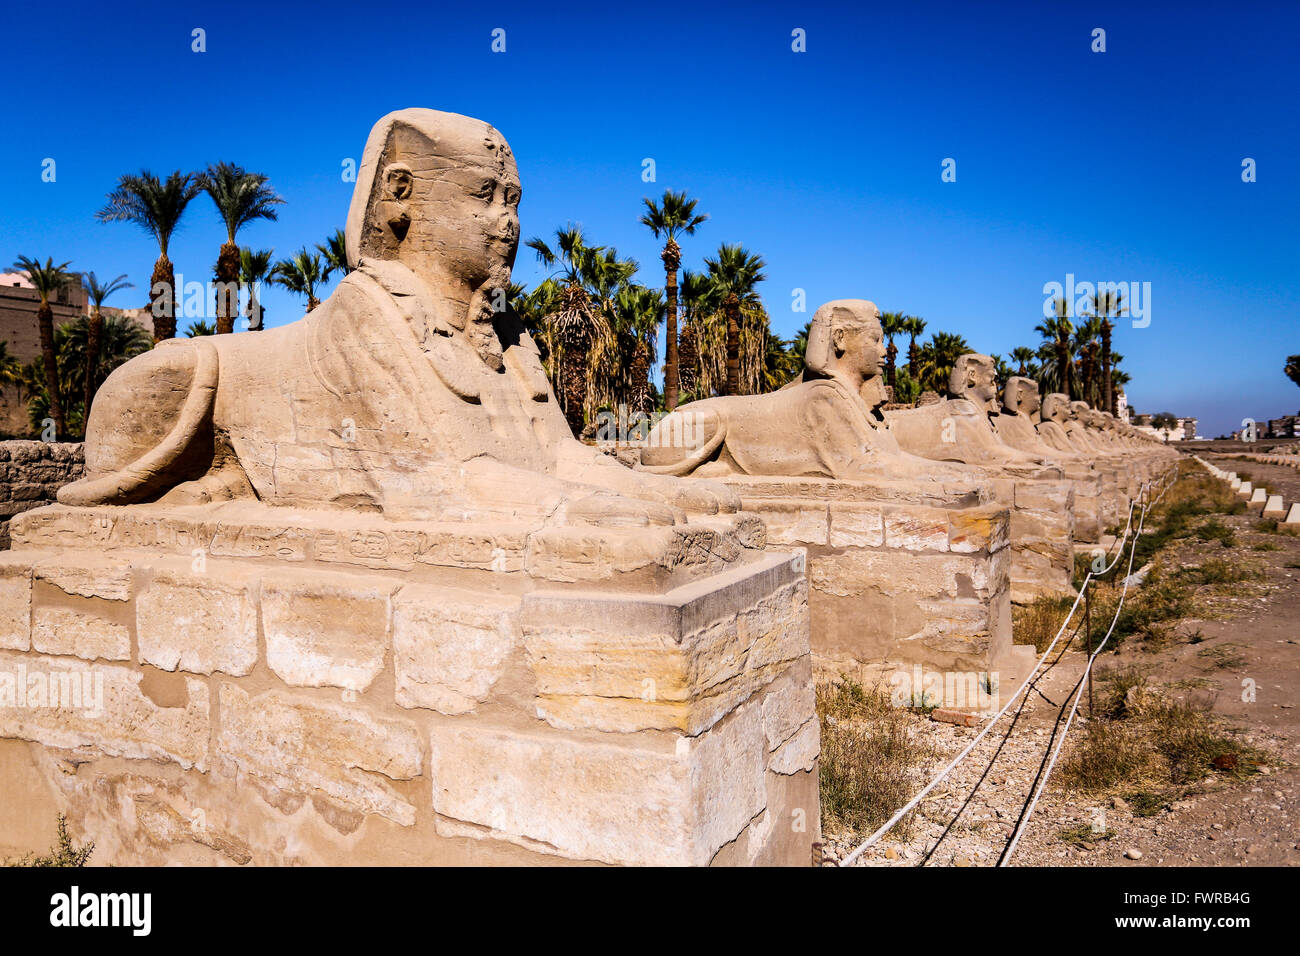 The Avenue of Sphinx at the Luxor Temple in Luxor Egypt - Stock Image